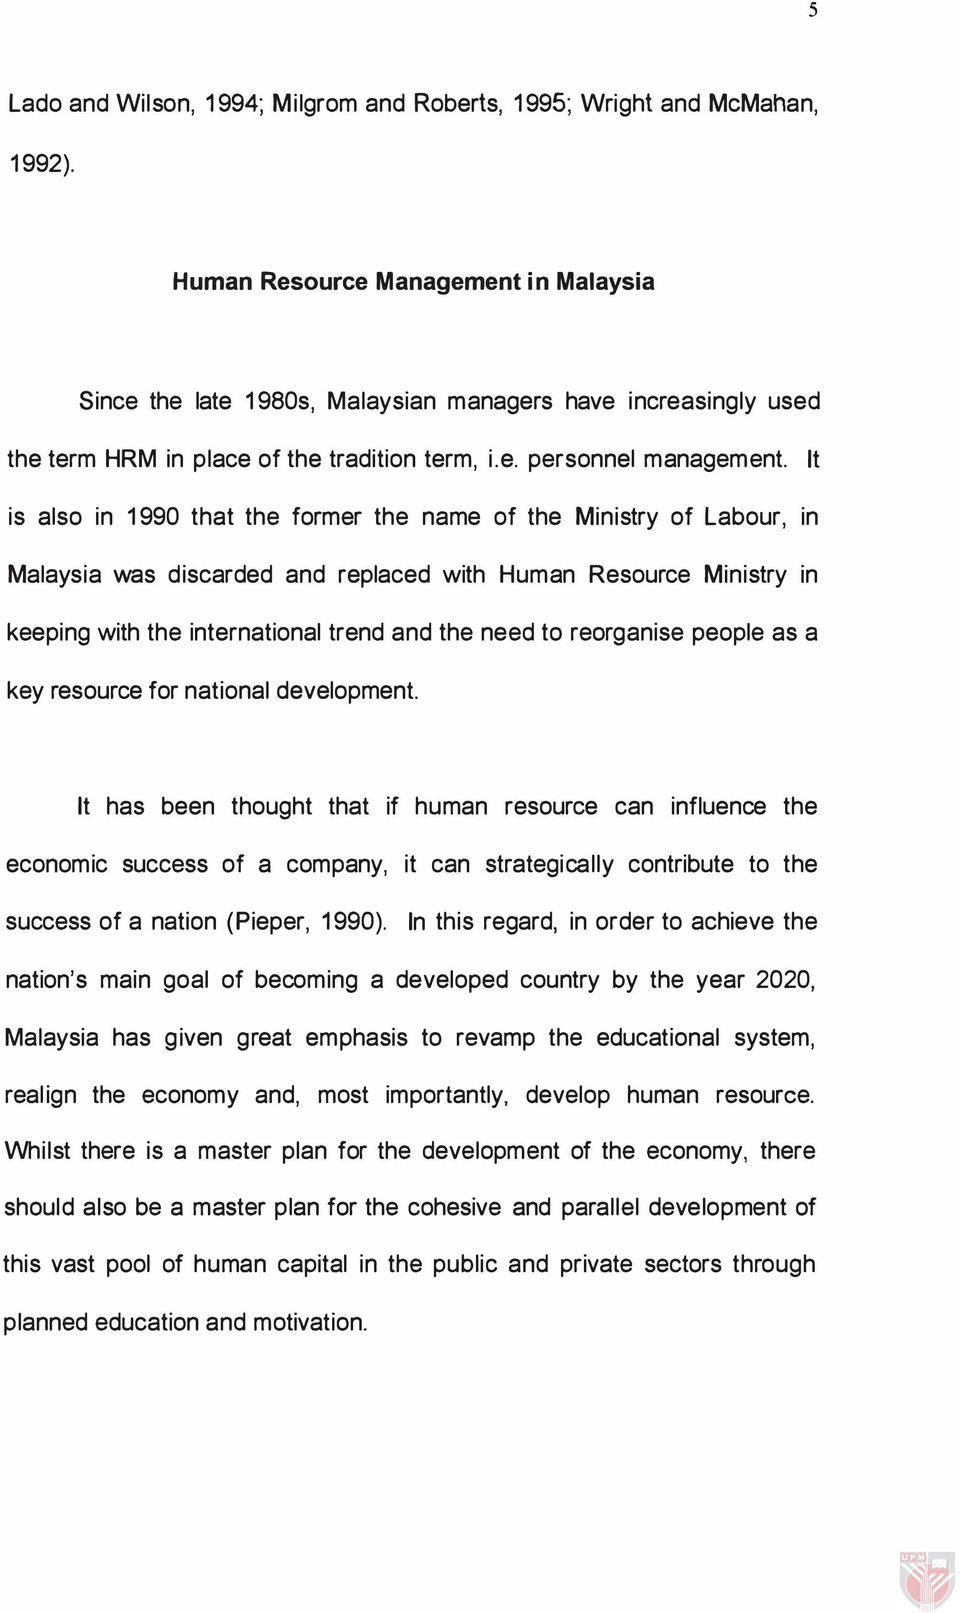 It is also in 1990 that the former the name of the Ministry of Labour, in Malaysia was discarded and replaced with Human Resource Ministry in keeping with the international trend and the need to